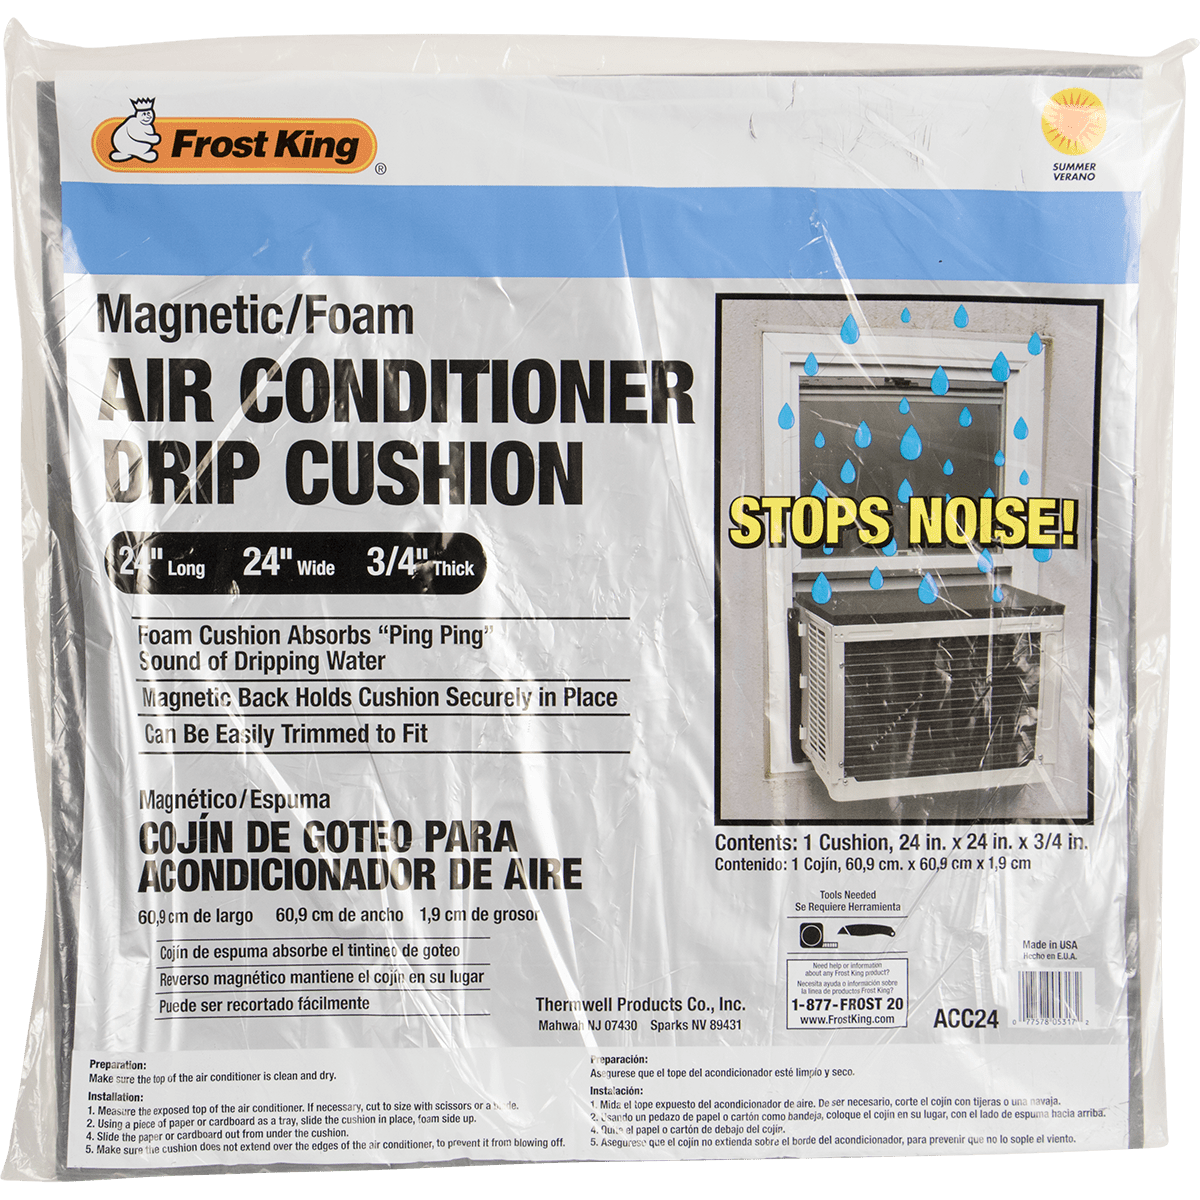 Frost King Acc24 Air Conditioner Drip Cushion Sylvane